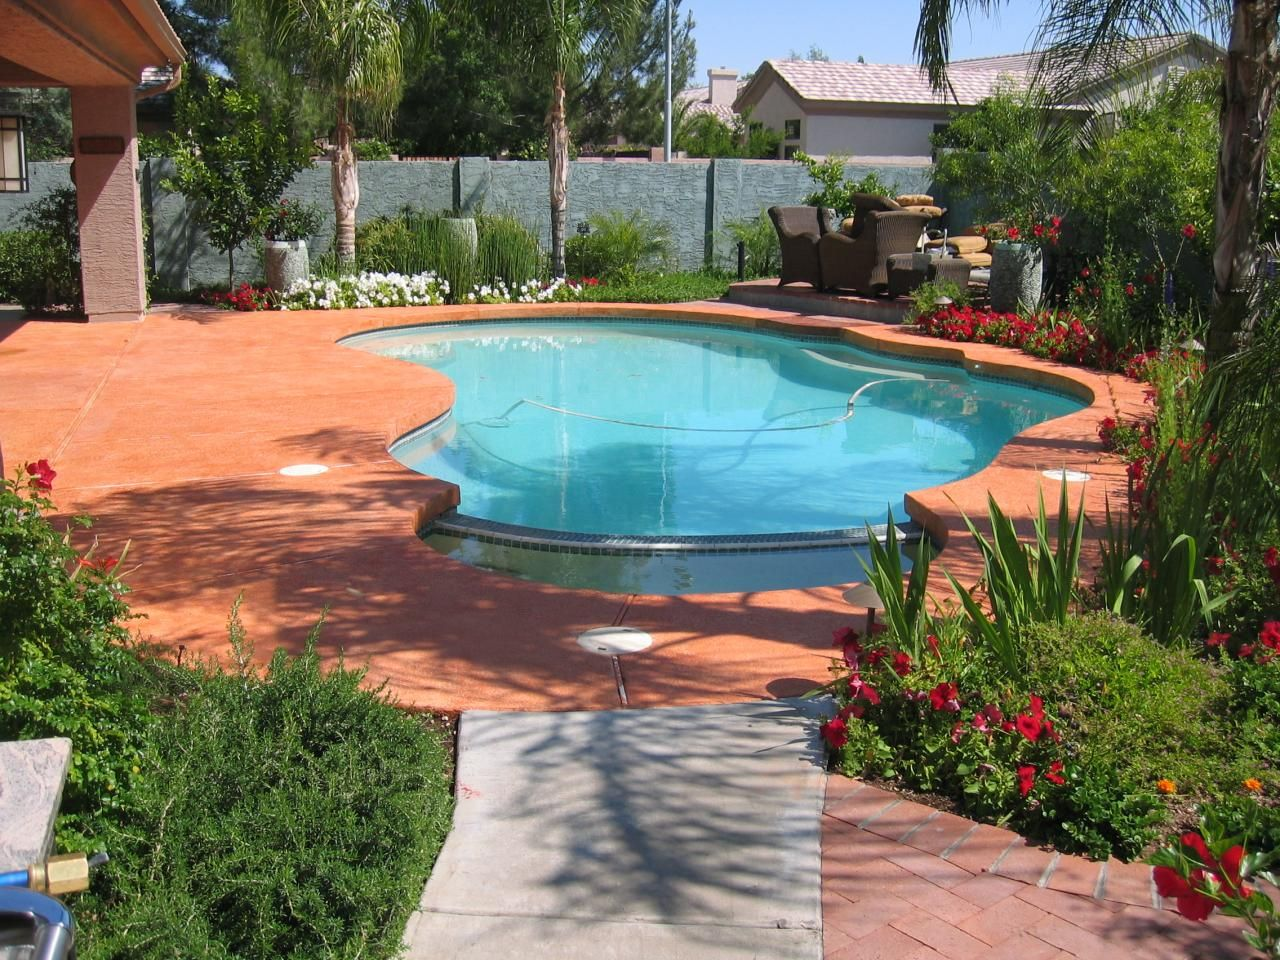 Painted Concrete Around Pool